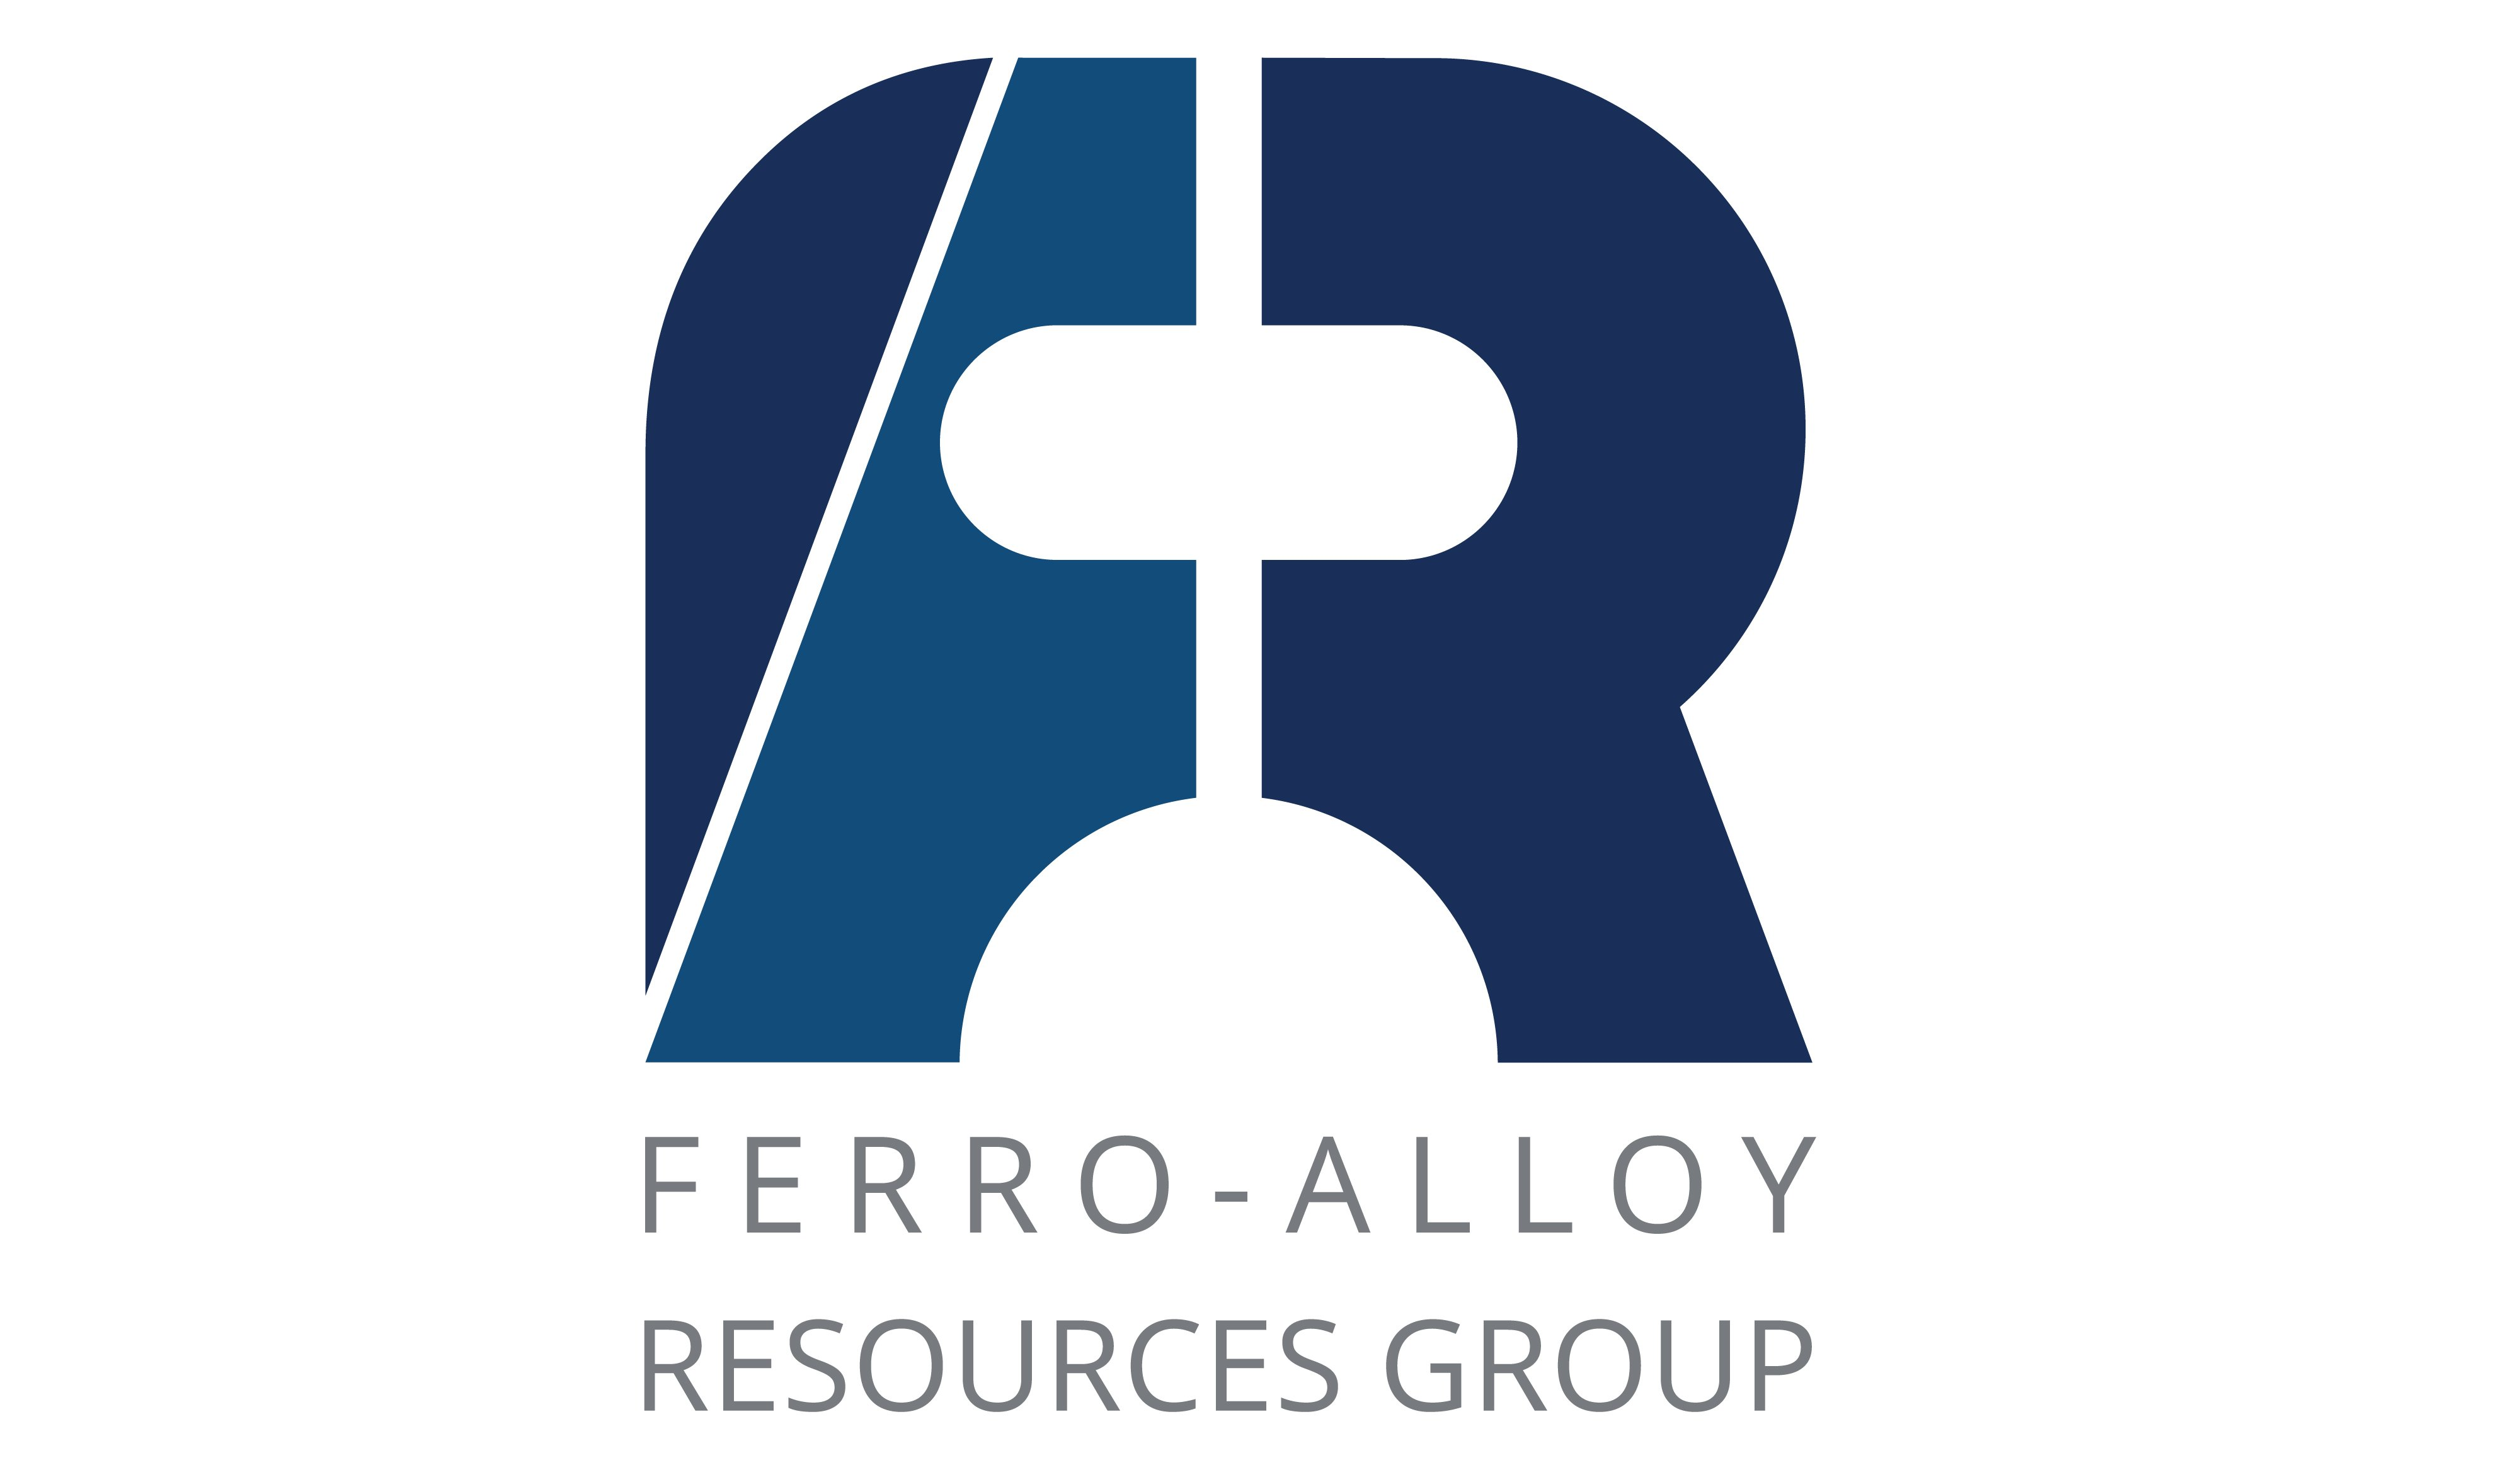 Ferro-Alloy Resources Limited